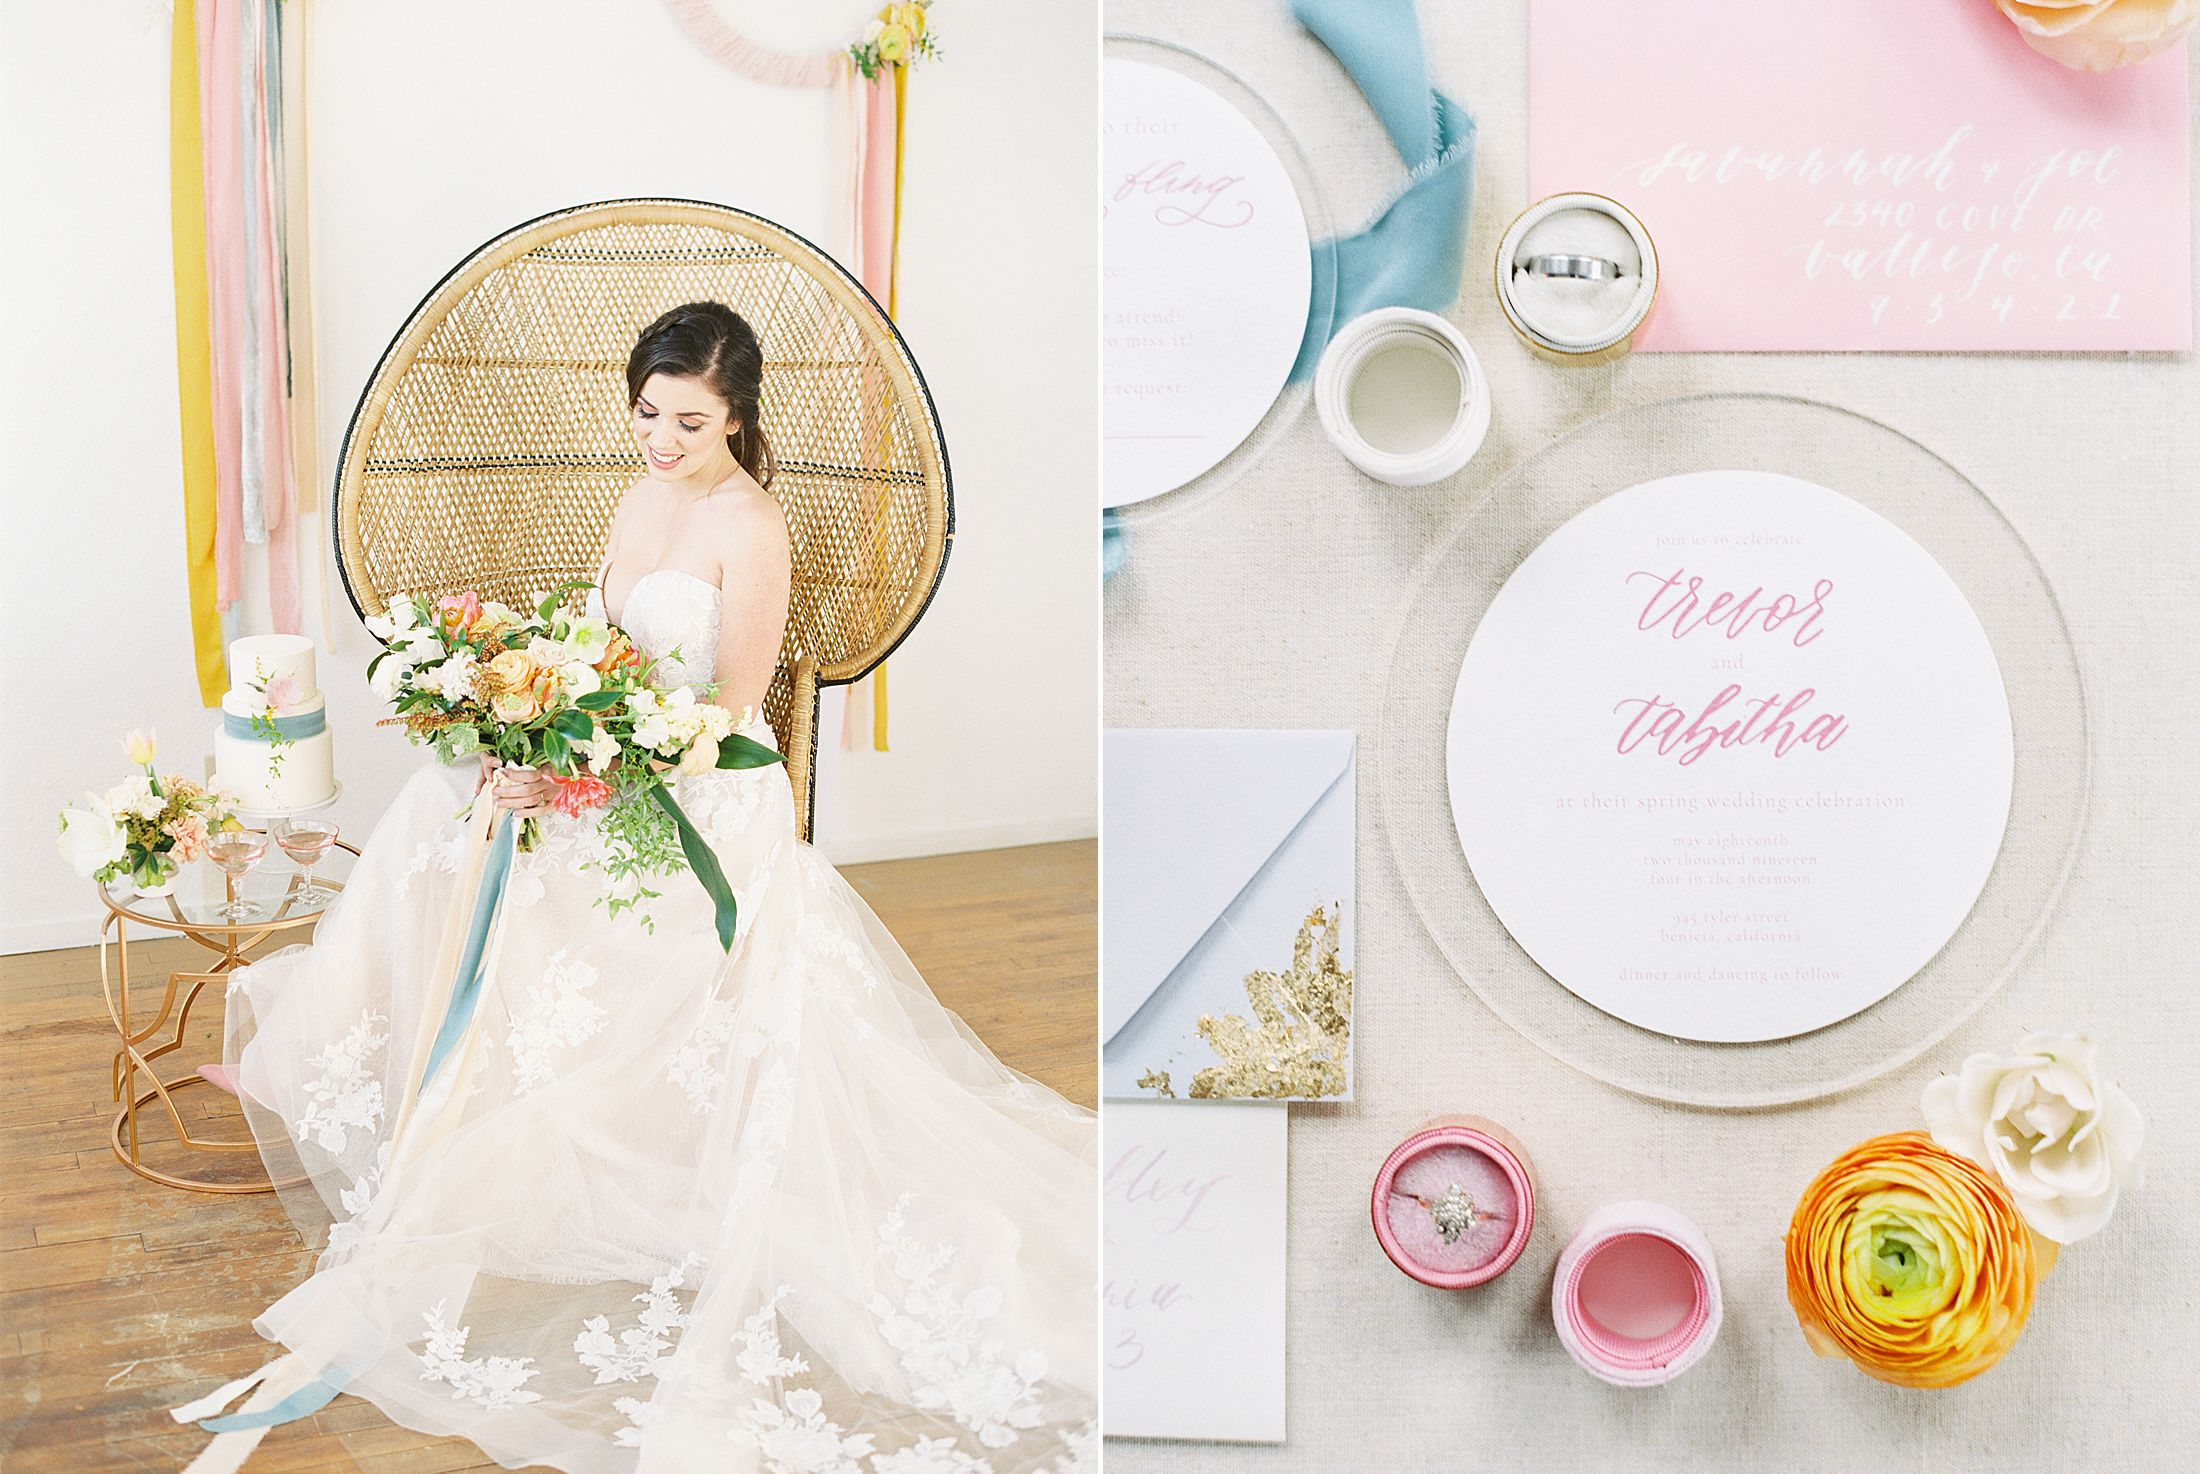 Bay Area Spring Wedding Inspiration - Ashley Baumgartner - Inspired By This - Party Crush Studio and Lens of Lenox Videography - Bay Area Wedding Photography_0053.jpg